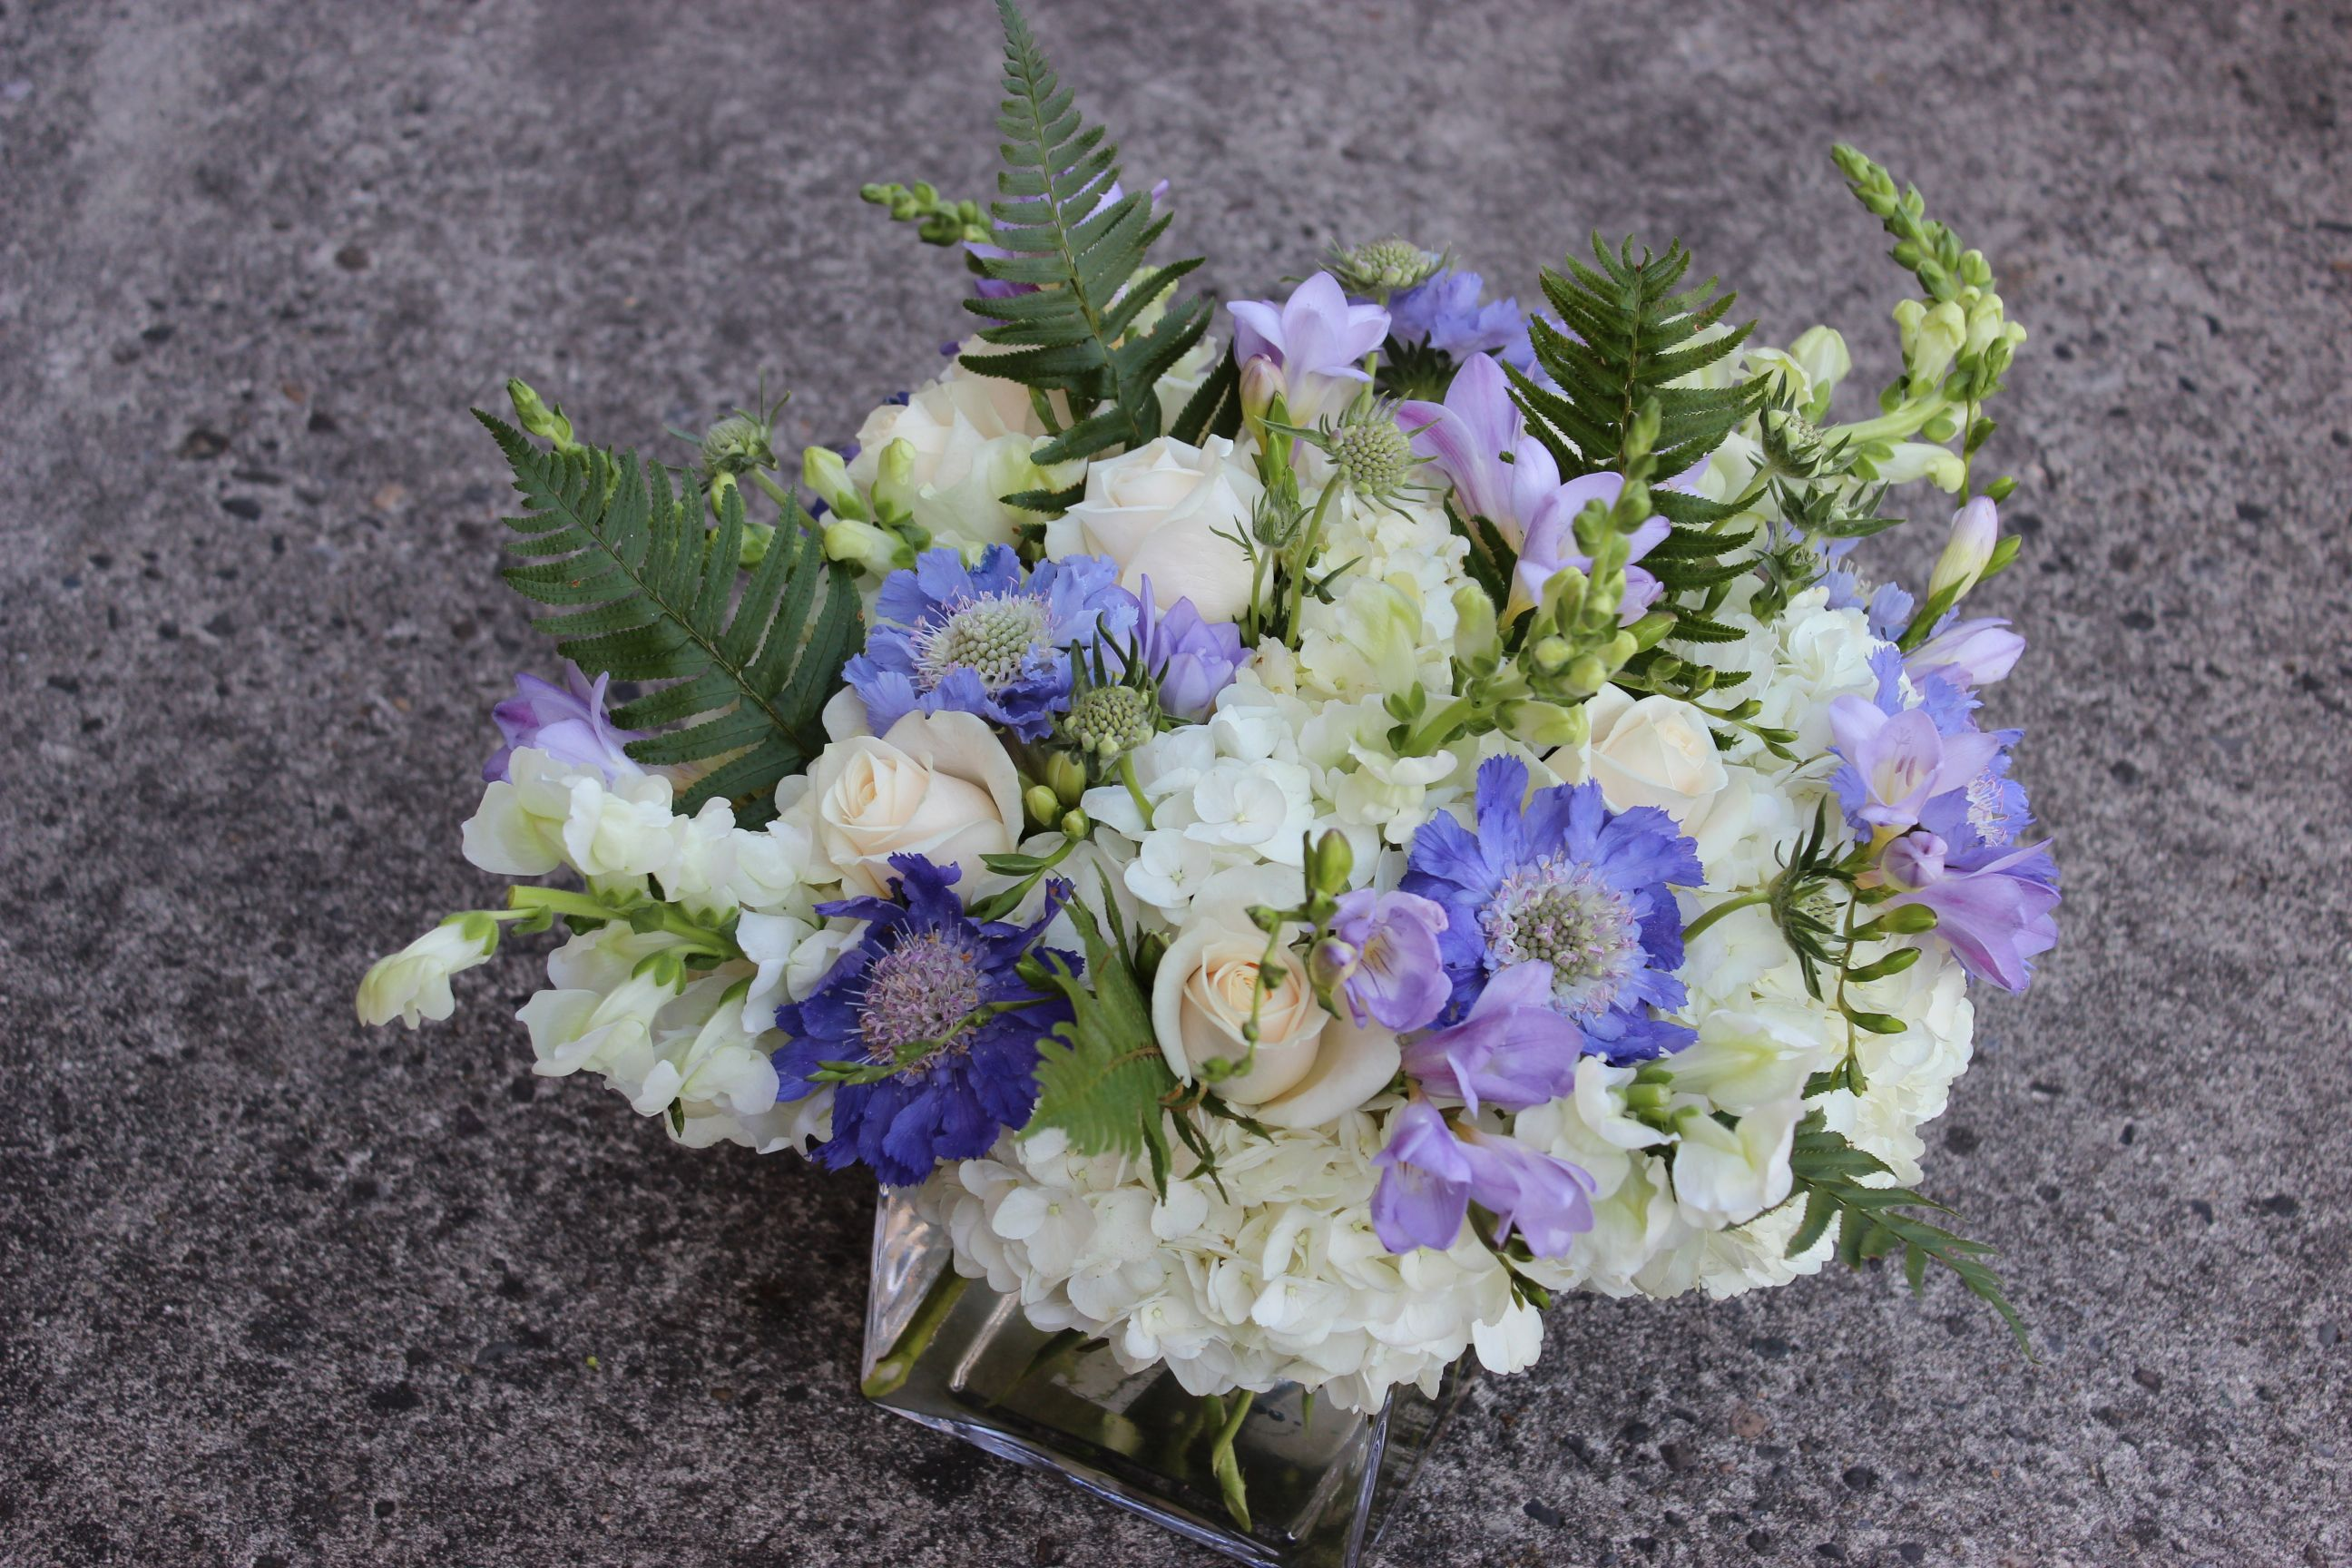 lavenders centerpiece wedding flowers   lavenders   sophisticated floral designs & accessories   http://sophisticatedfloral.com/users/awp.php?ln=110659